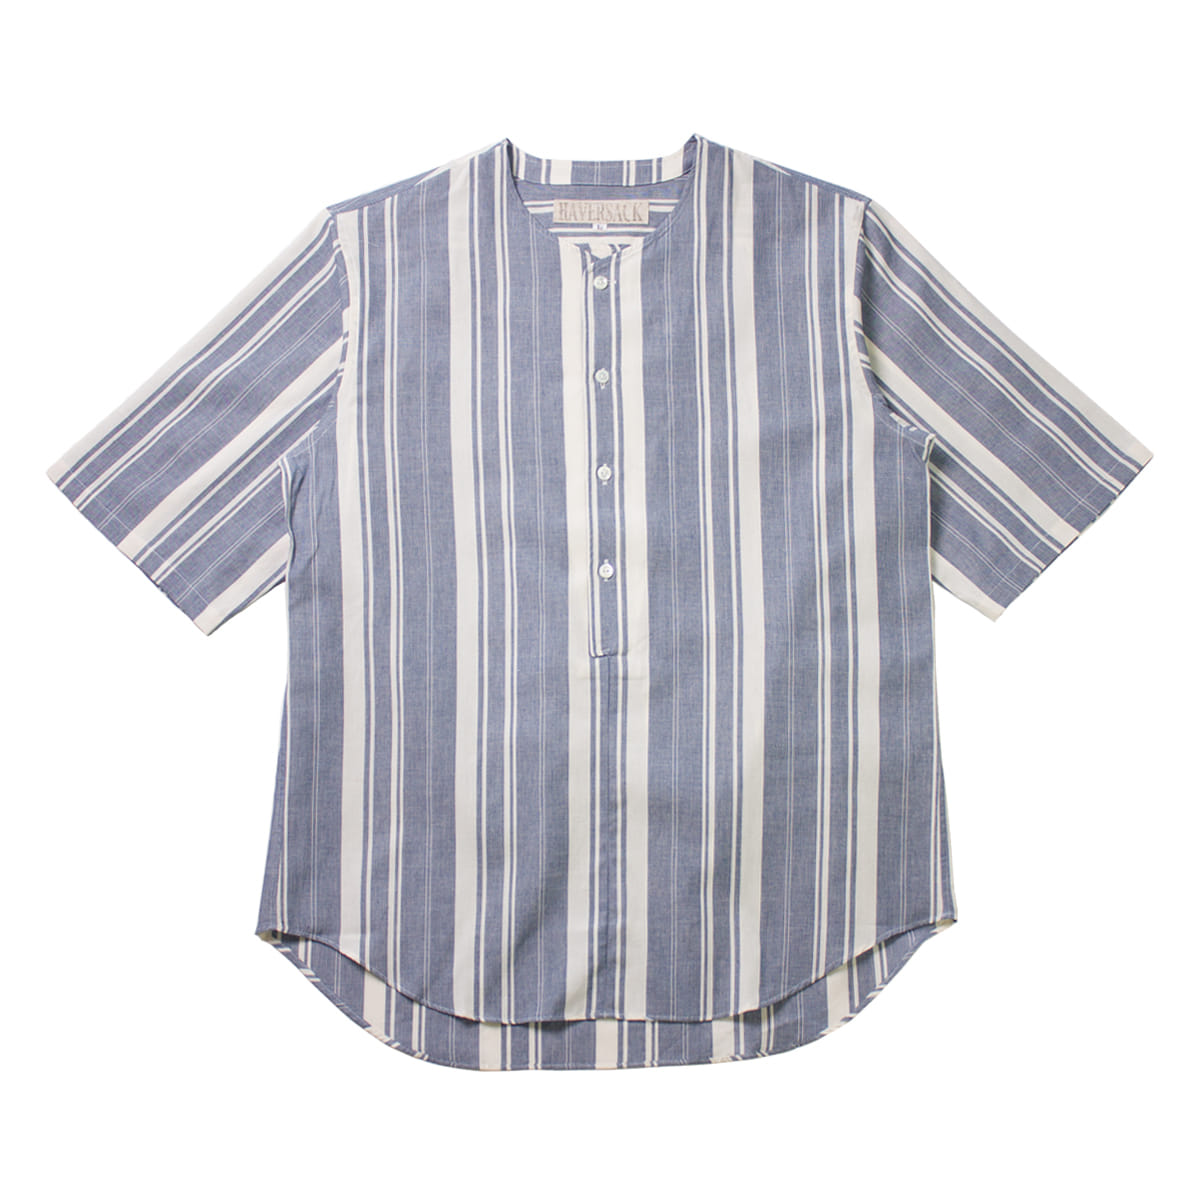 [HAVERSACK] HICKORY STRIPE SHIRT 'INDIGO'